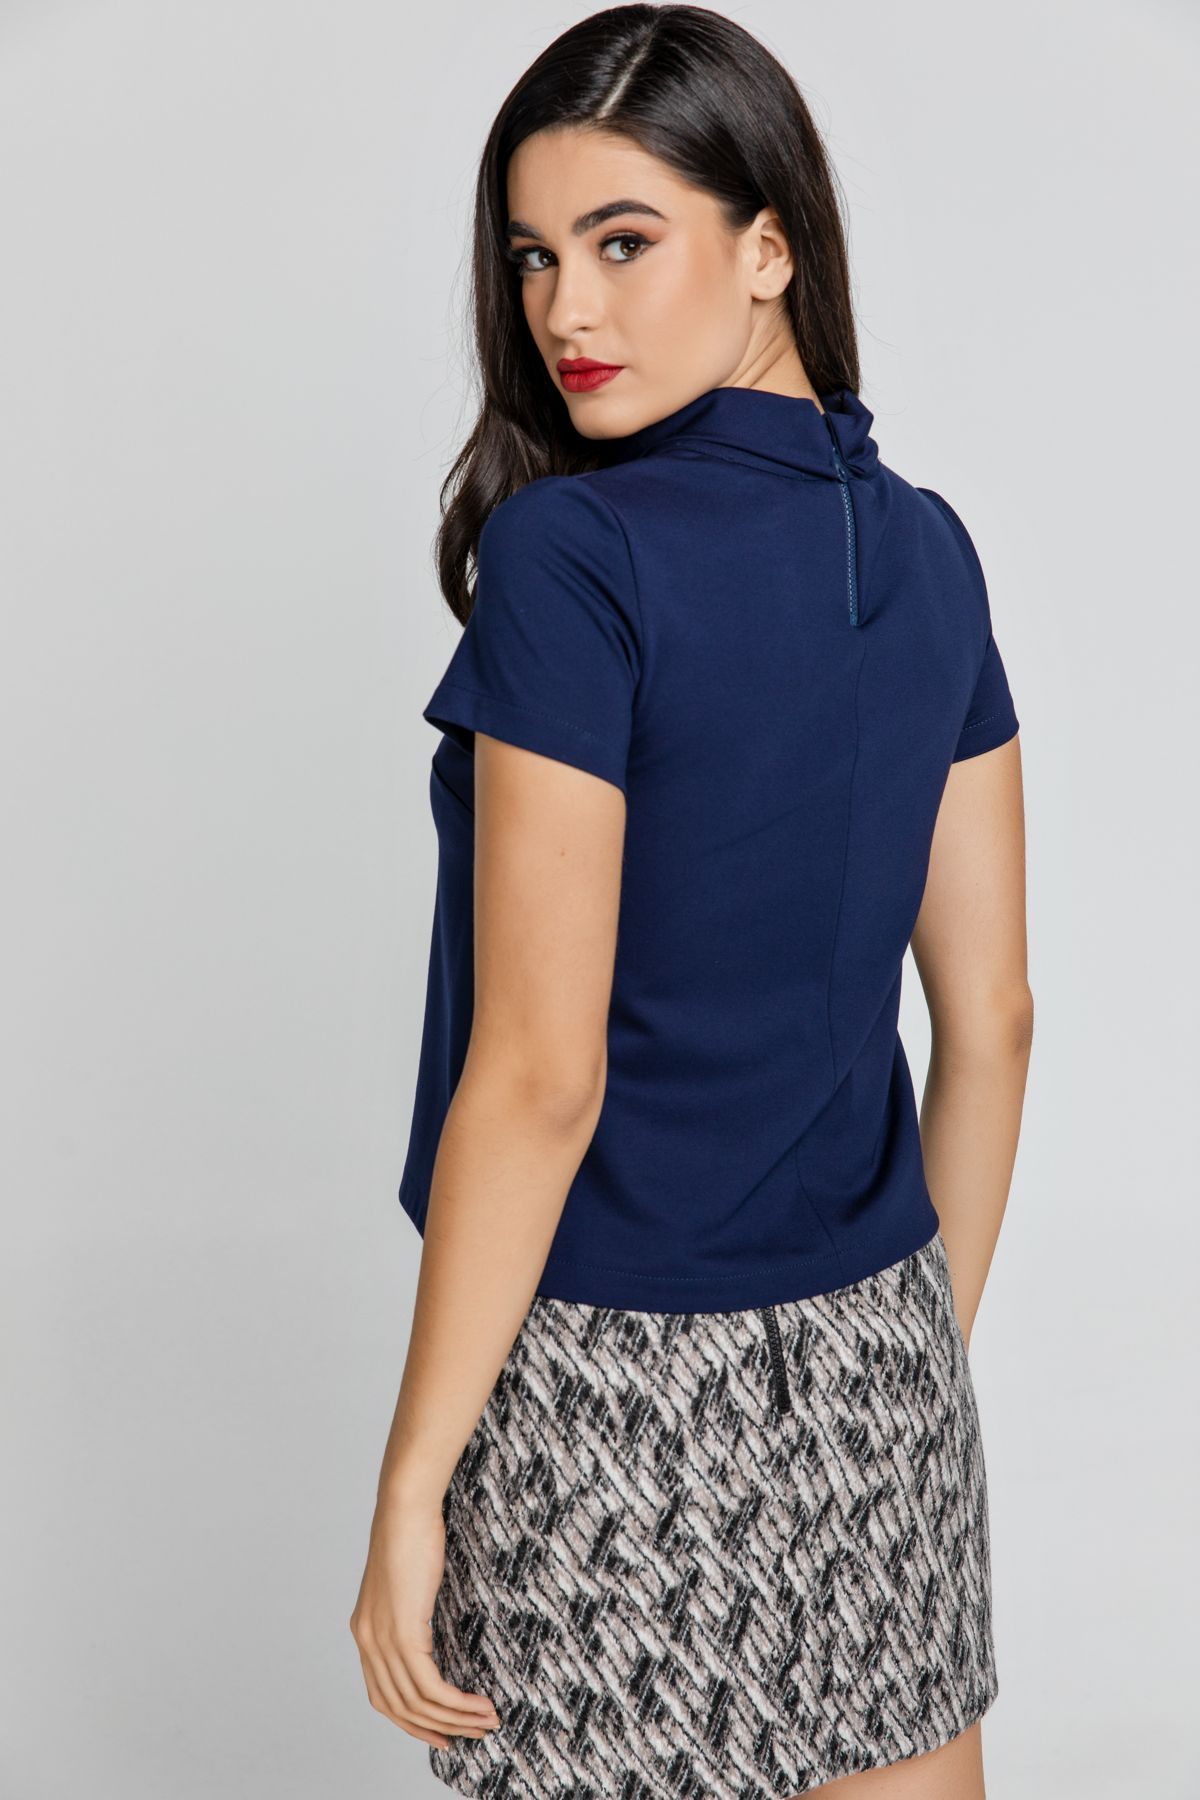 Short Sleeve Blue Top